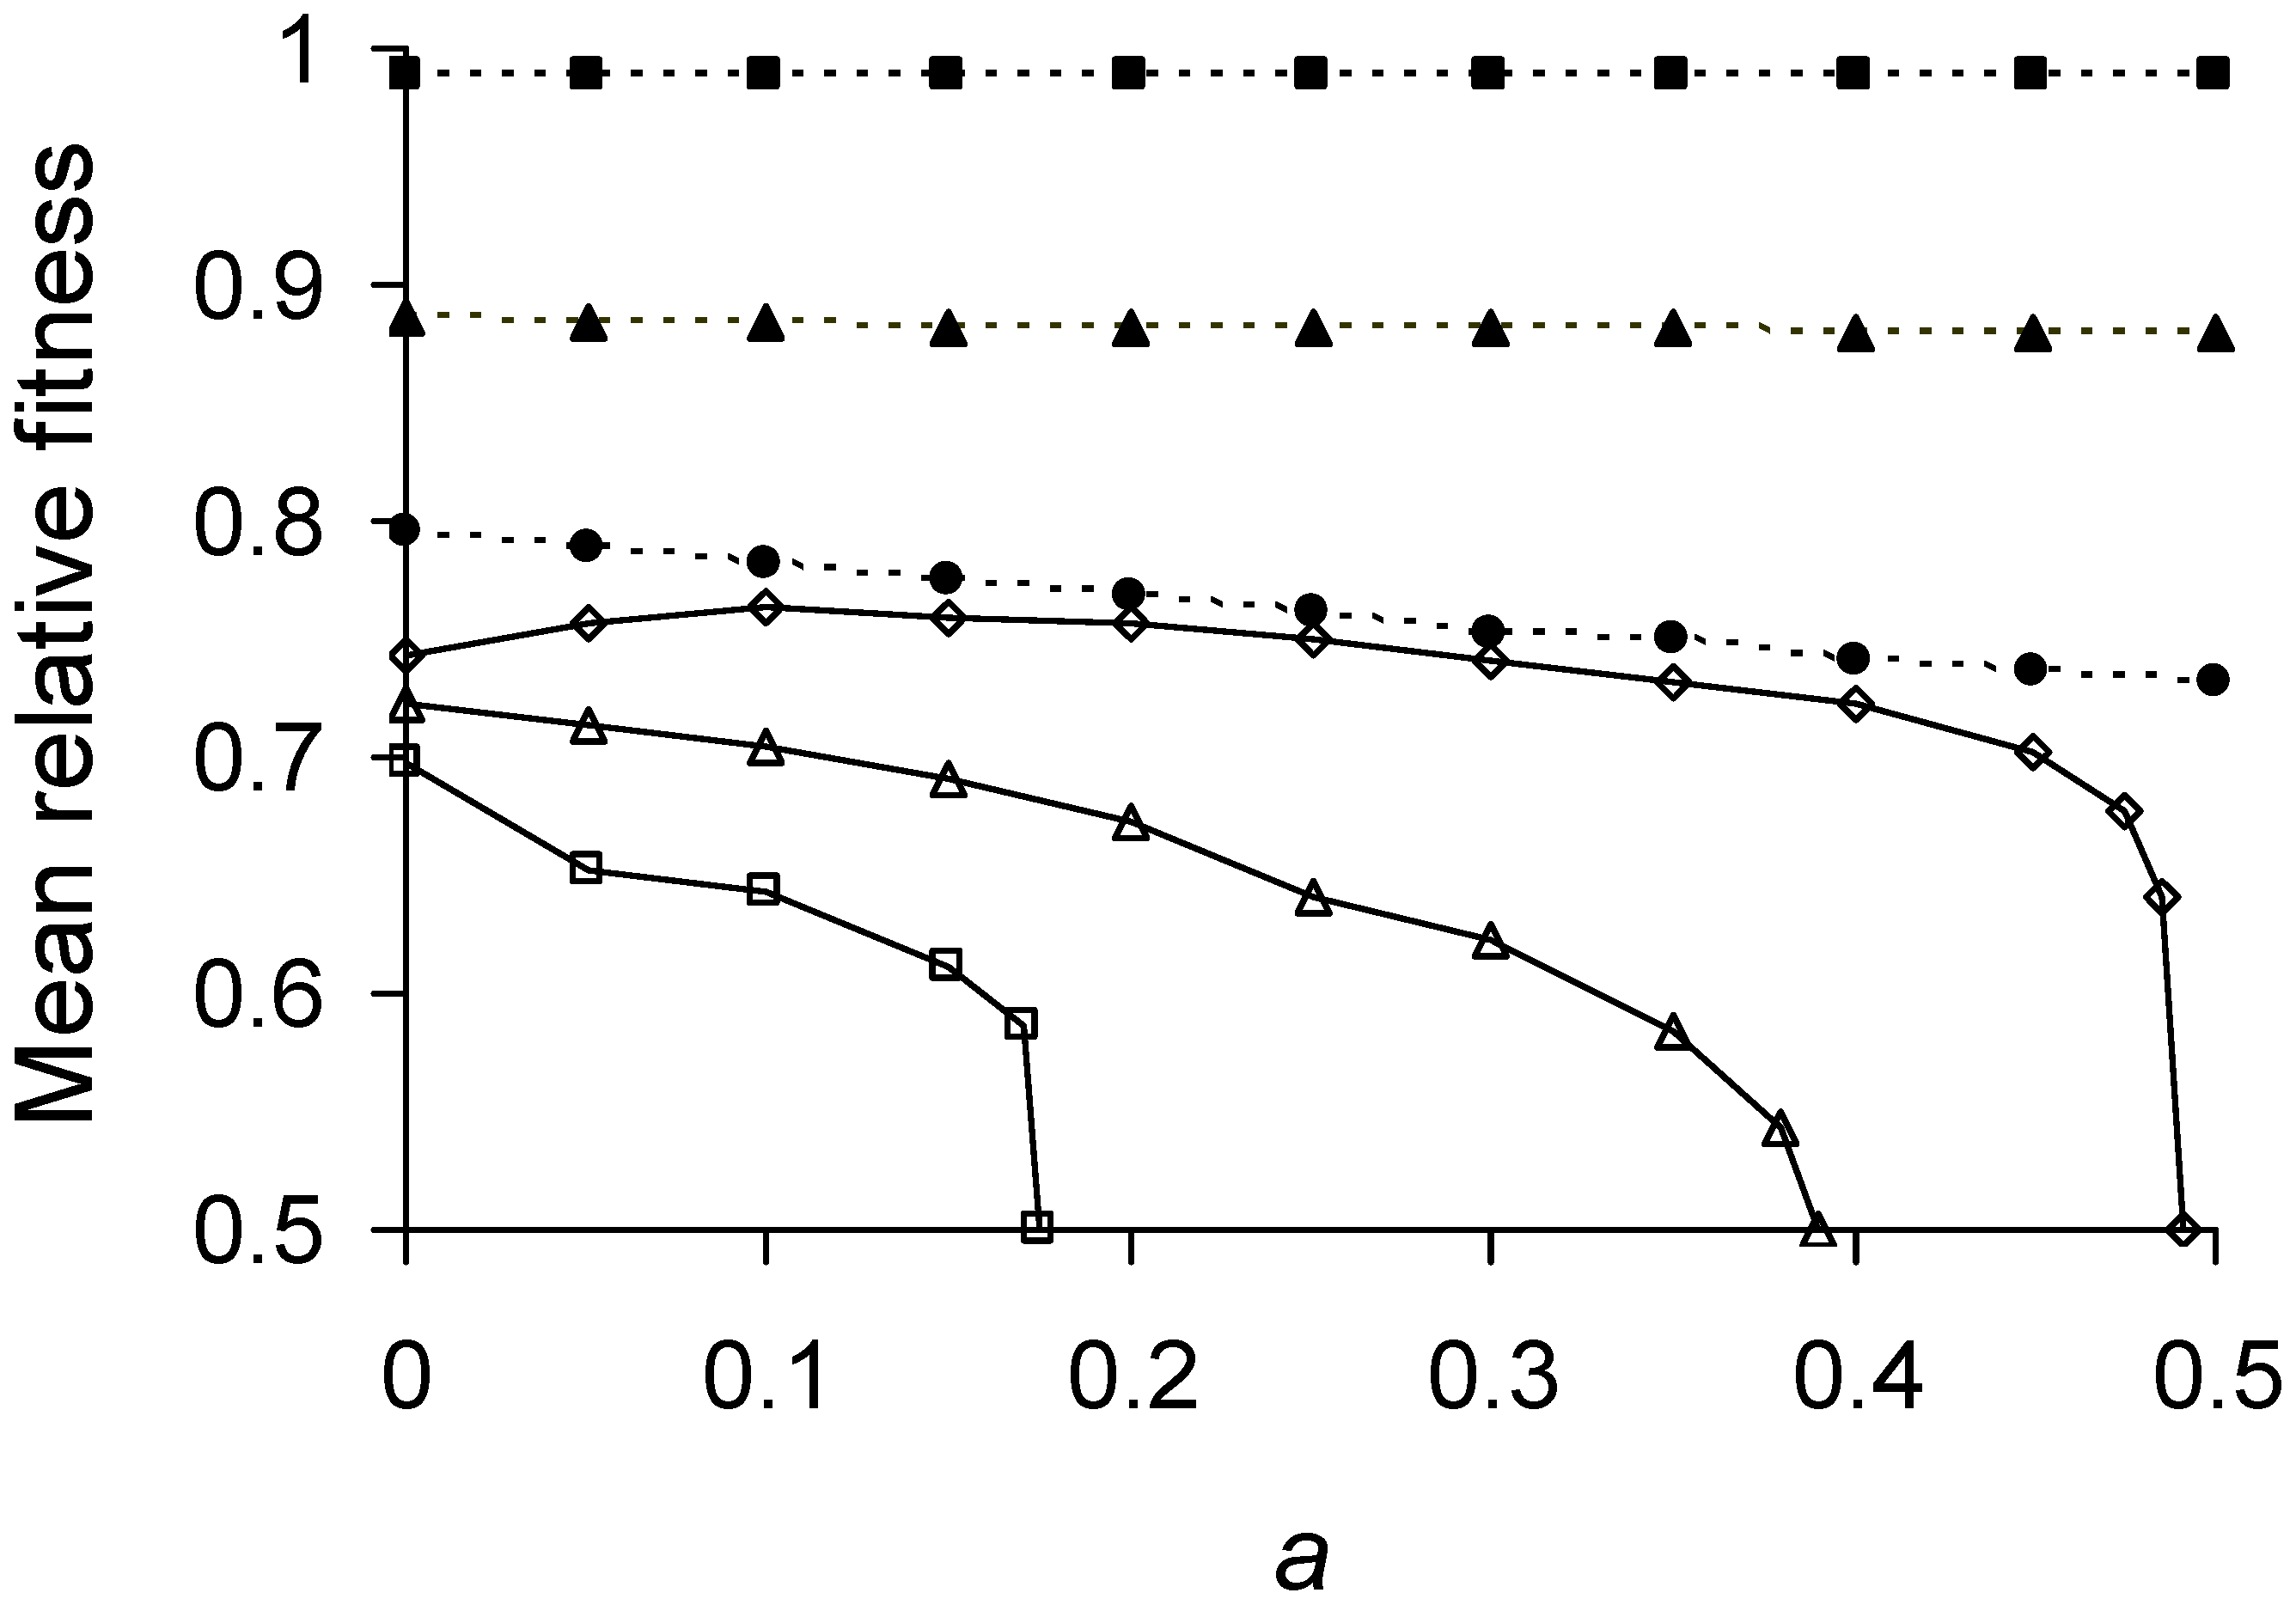 Mean relative fitness as function of asymmetry for varying lifetime damage rates.